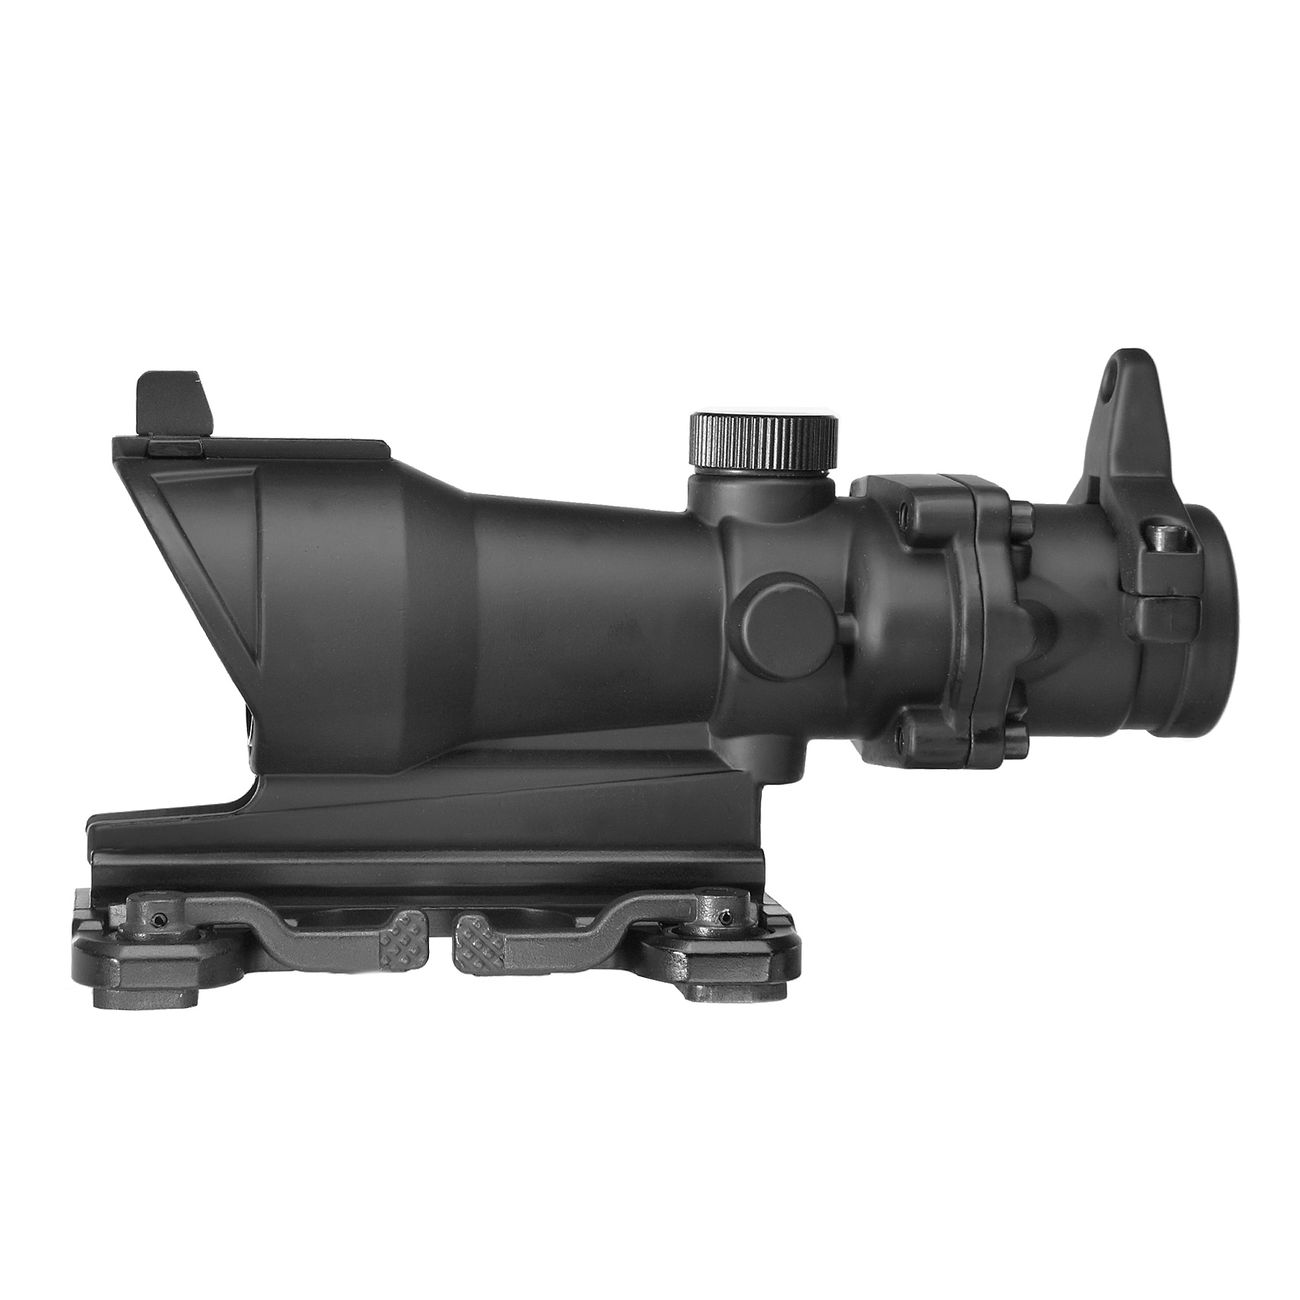 Aim-O TA01 Style Scope 4x32 mit QD-Mount schwarz AO 5310-BK 1